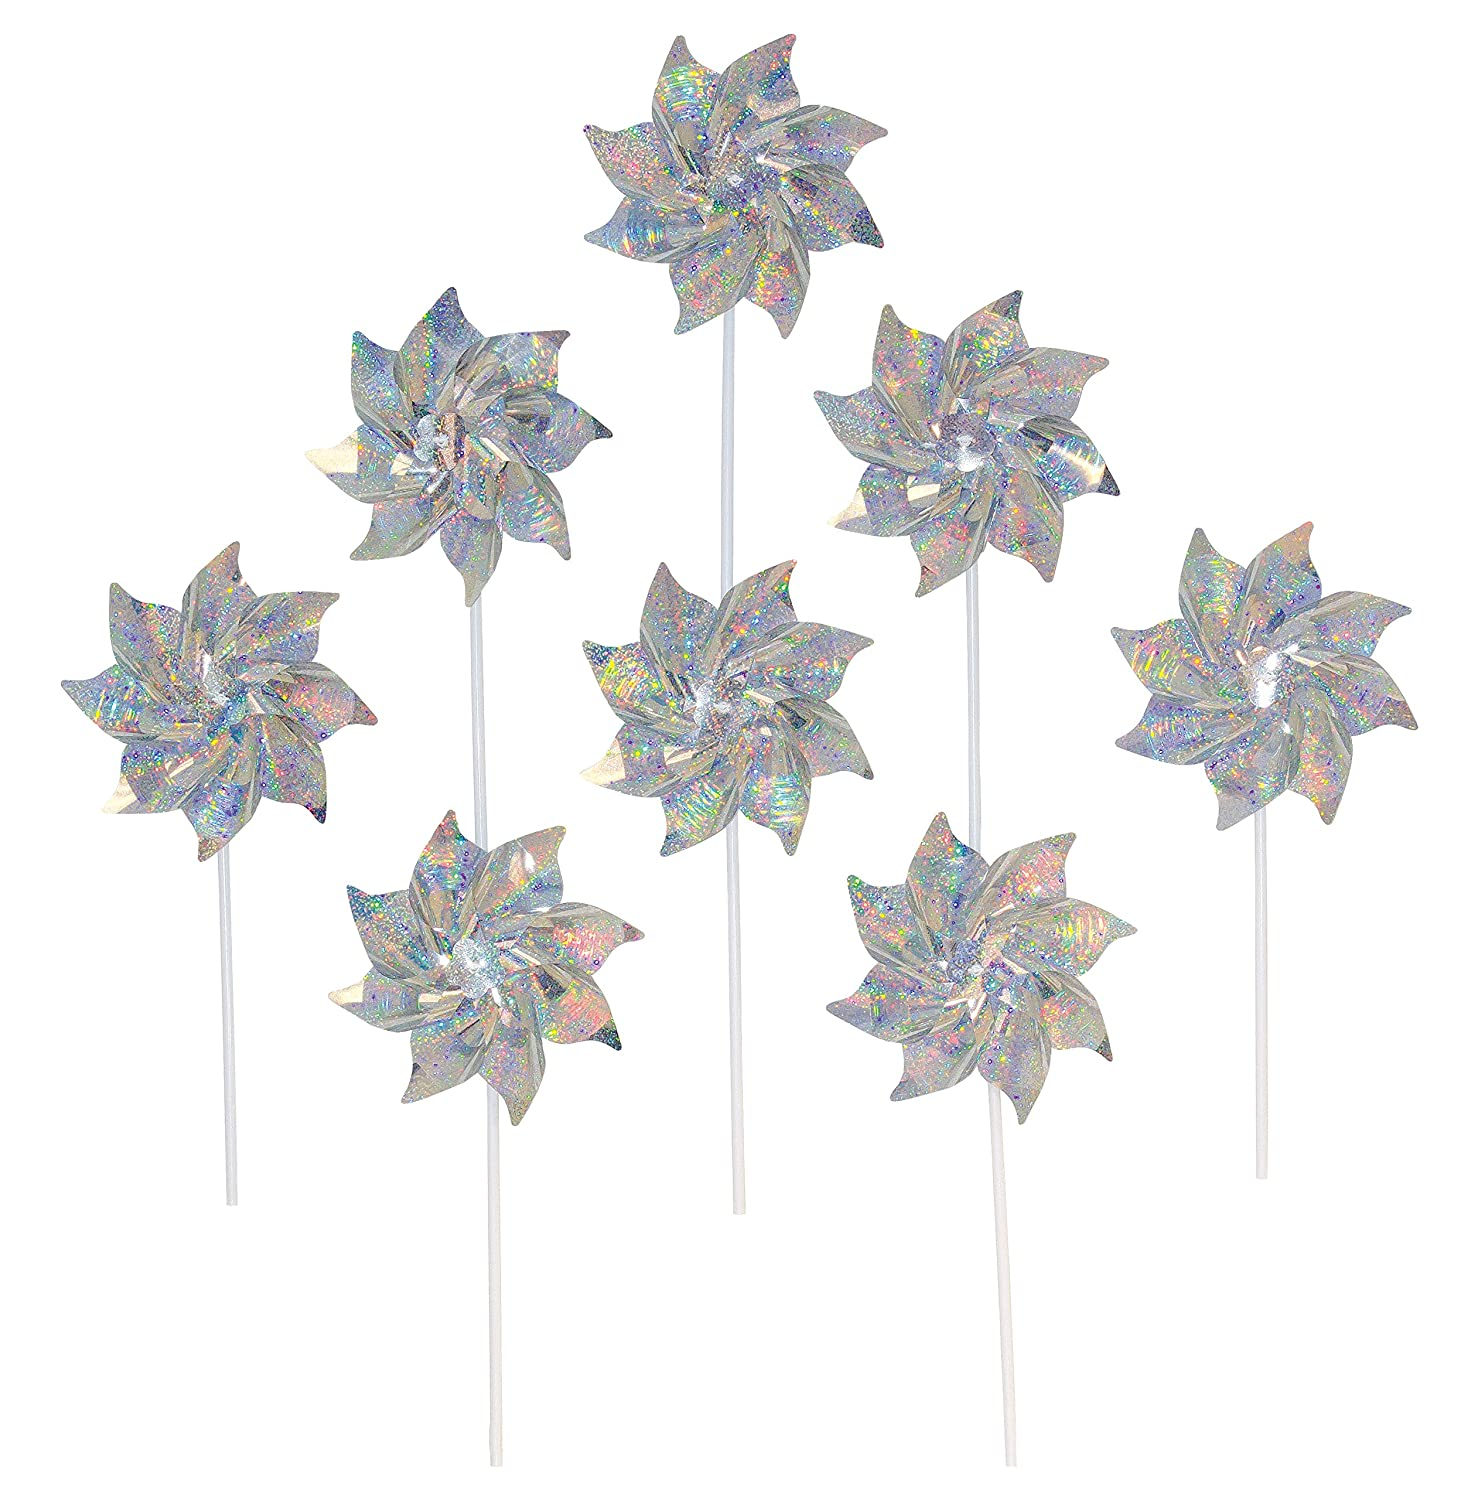 In the Breeze Silver Mylar Pinwheel - Sparkly Silver Spinners - Good Animal & Bird Deterrant - 8 Piece Bags